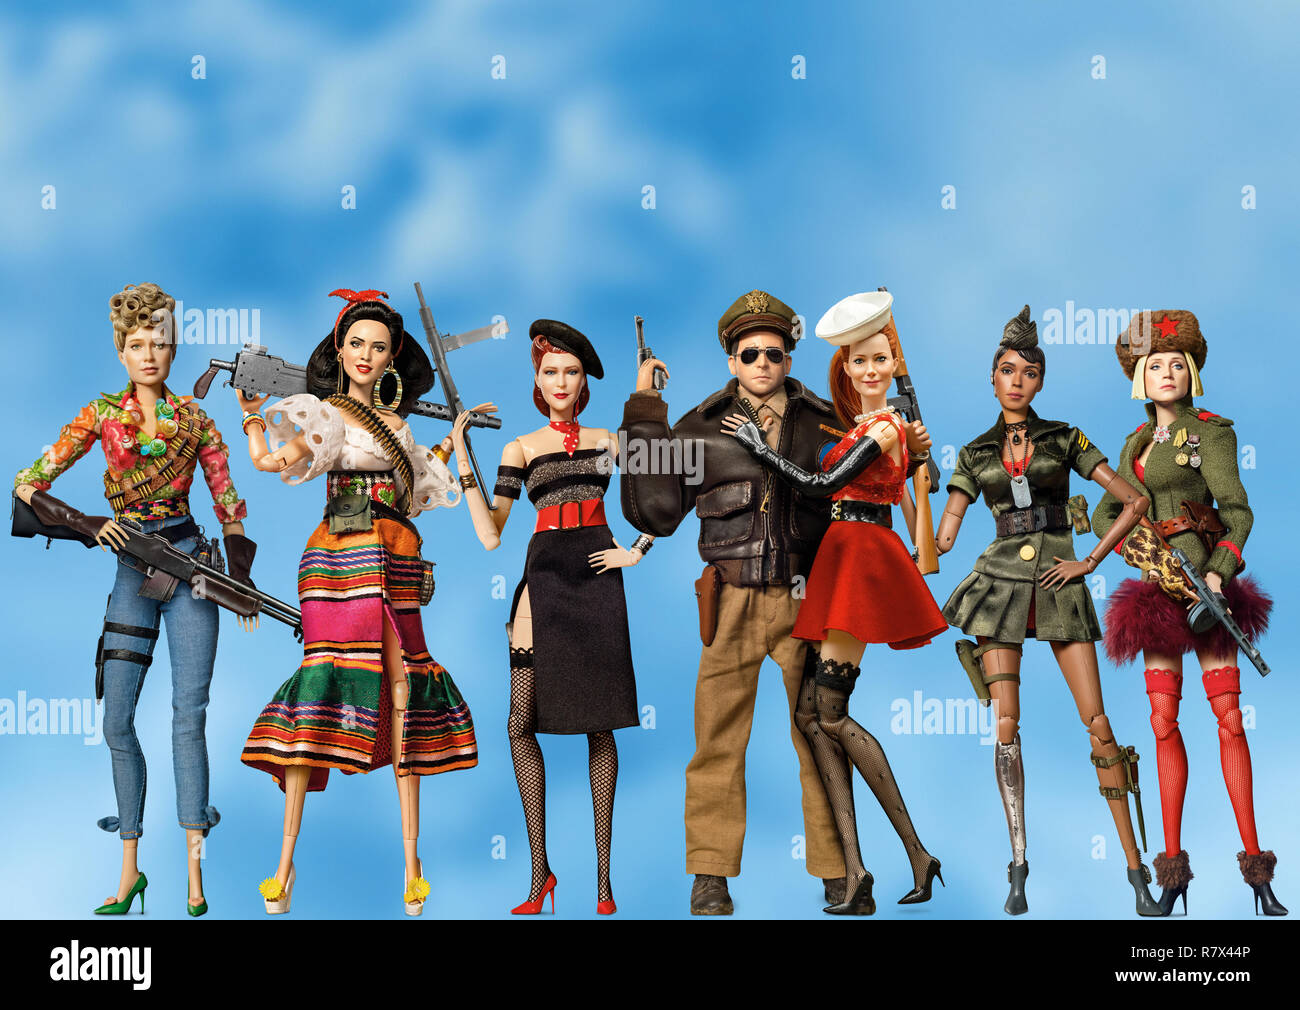 The dolls of 'Welcome to Marwen,' directed by Robert Zemeckis (from left): Roberta (Merritt Wever), Carlala (Eiza Gonzalez), Suzette (Leslie Zemeckis), Cap'n Hogie (Steve Carell), Nicol (Leslie Mann), GI Julie (Janelle Monáe) and Anna (Gwendoline Christie). Photo Credit: Universal Pictures and Storyteller Distribution Co., LLC. / The Hollywood Archive - Stock Image